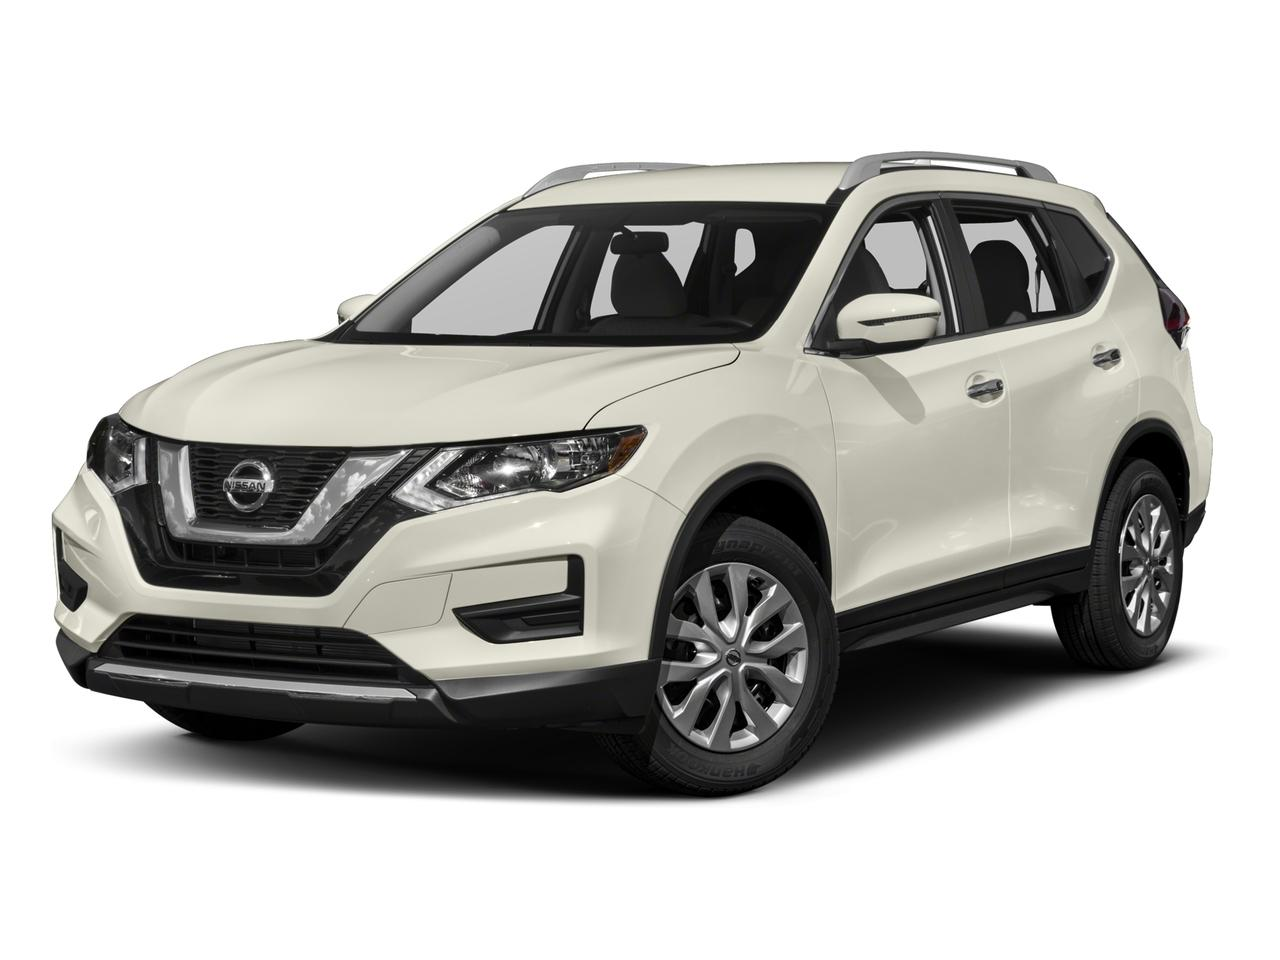 2017 Nissan Rogue Vehicle Photo in BEND, OR 97701-5133